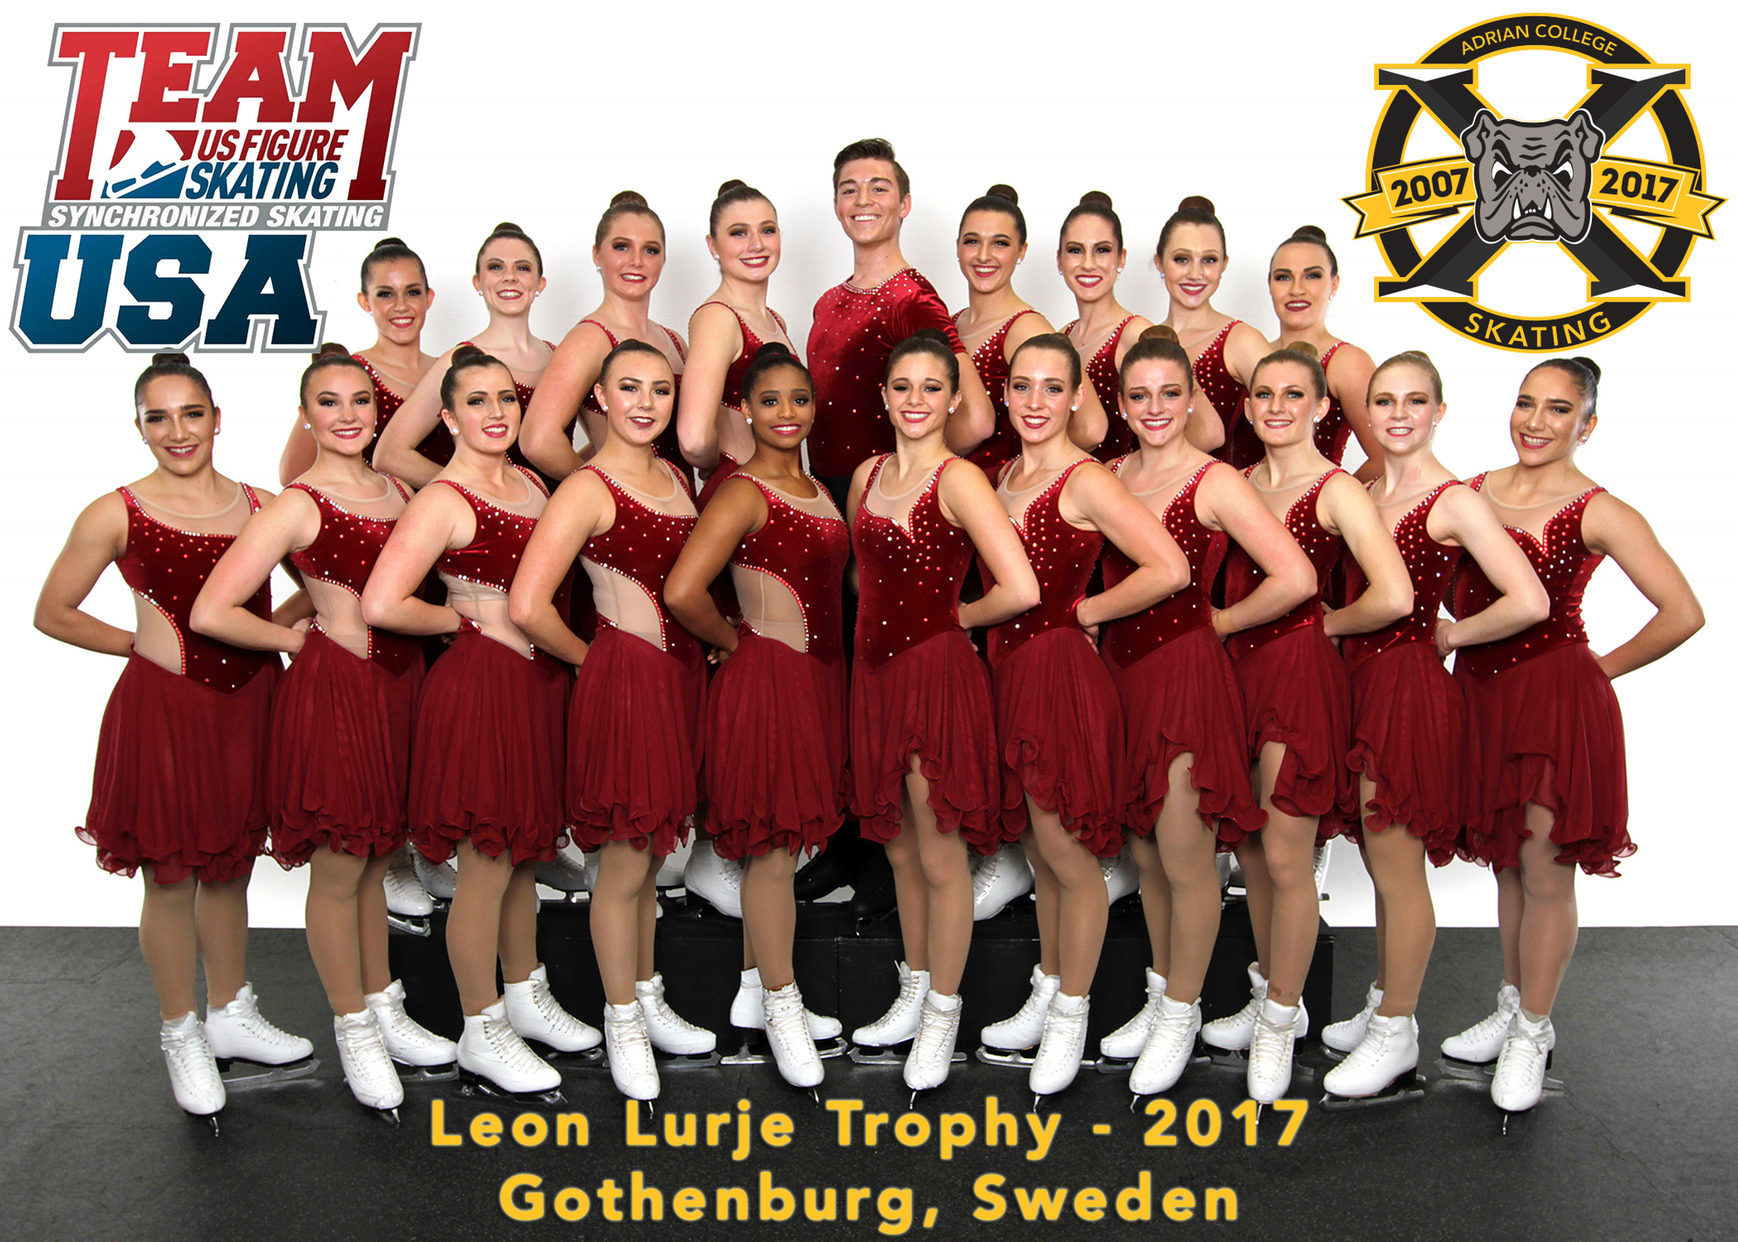 @AdrianVSST Senior Team Selected To Represent Team USA In Sweden for January International Competition